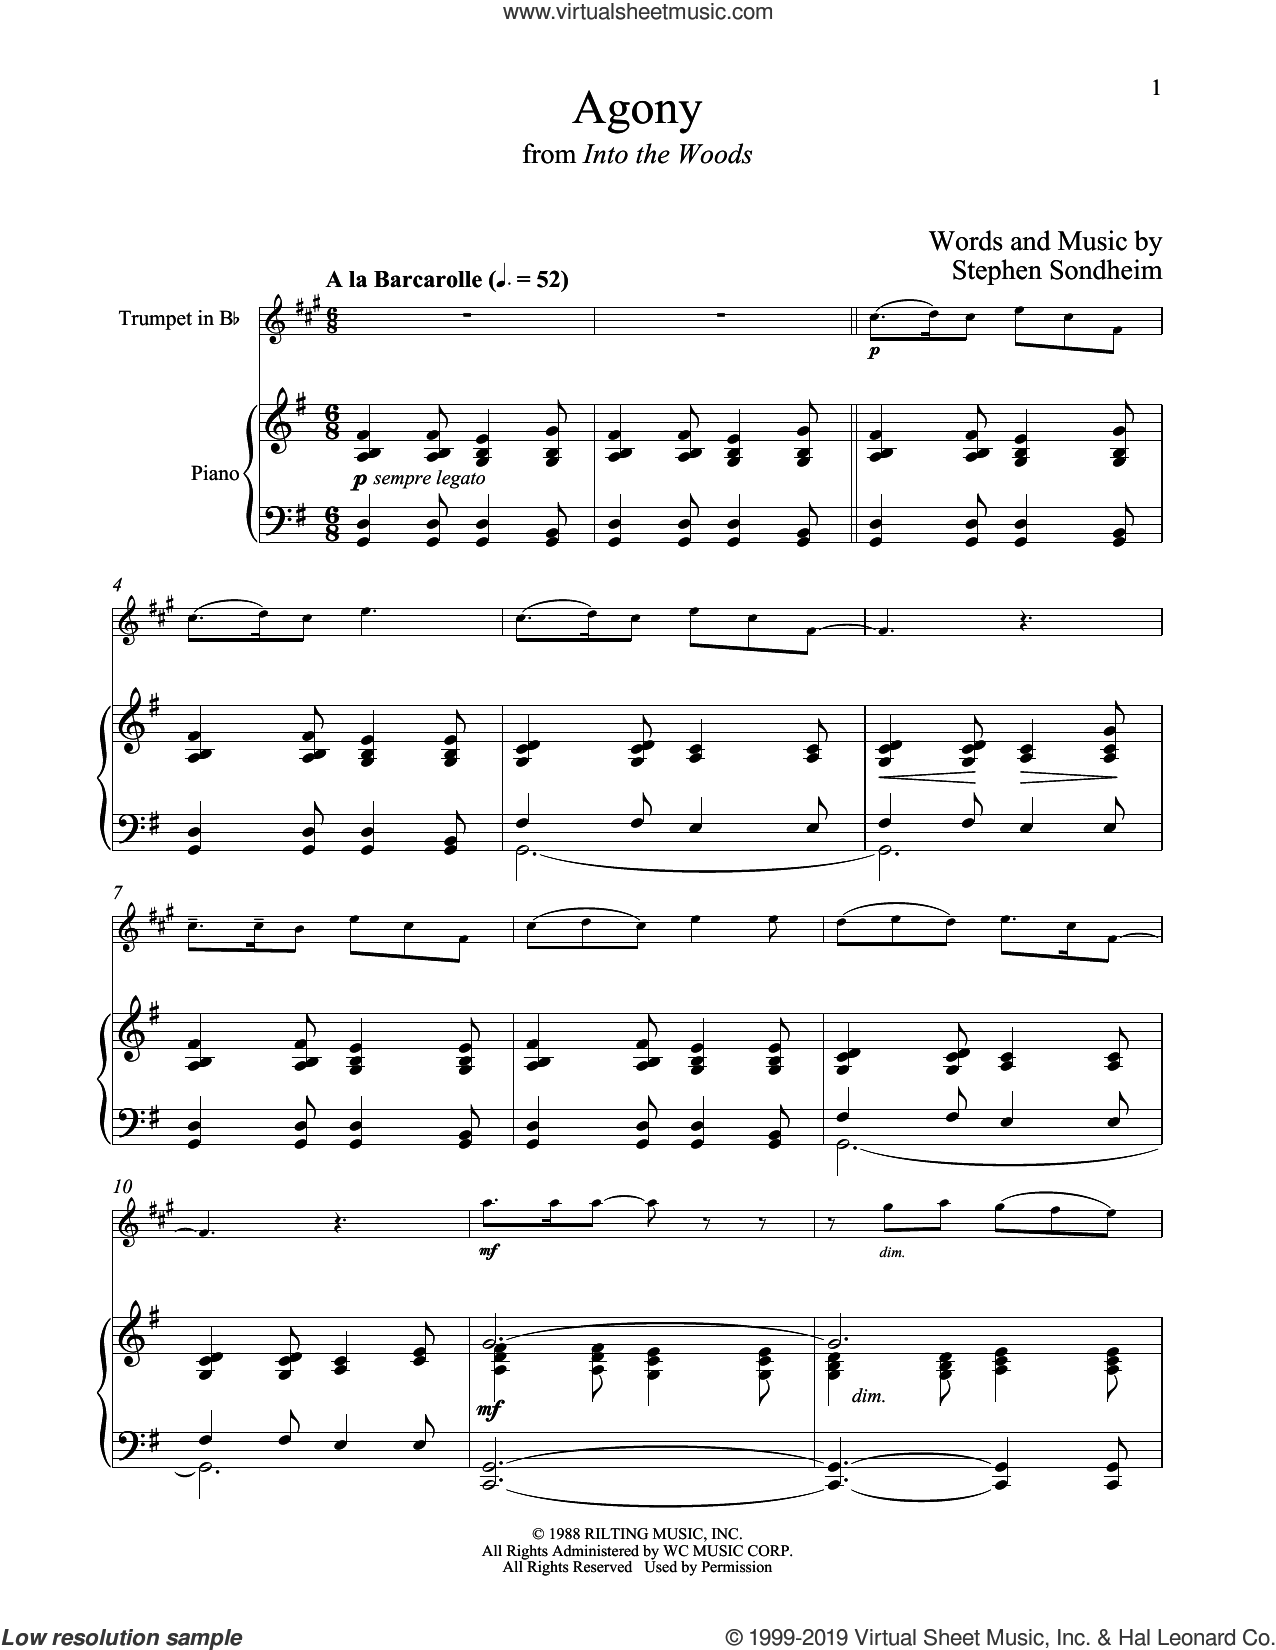 Agony (from Into The Woods) sheet music for trumpet and piano by Stephen Sondheim, intermediate skill level